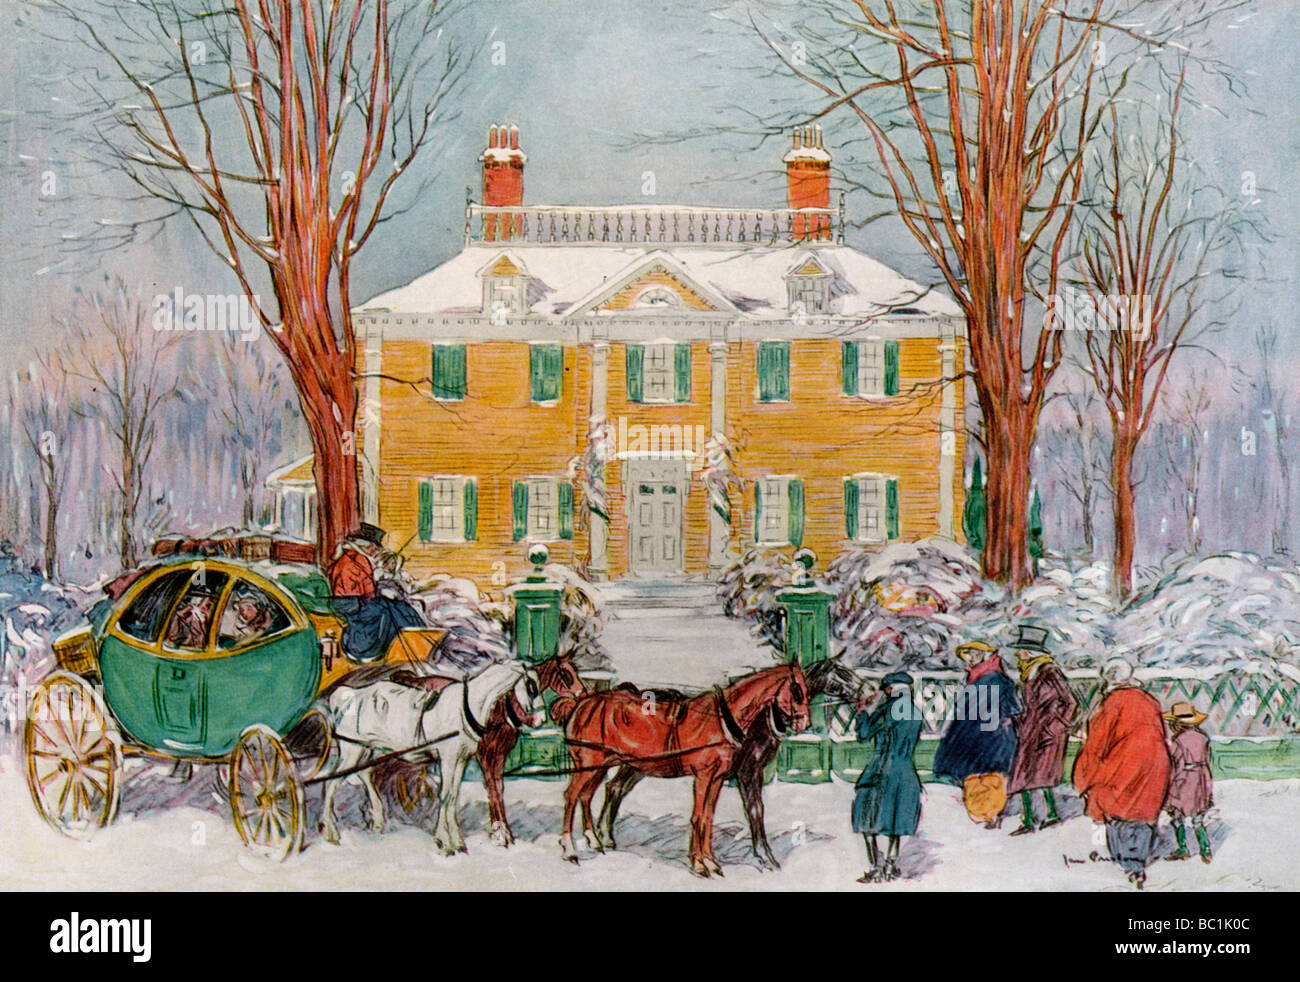 Longfellow House, Cambridge, Massachusetts, USA, c18th century (1921).Artist: James Preston - Stock Image